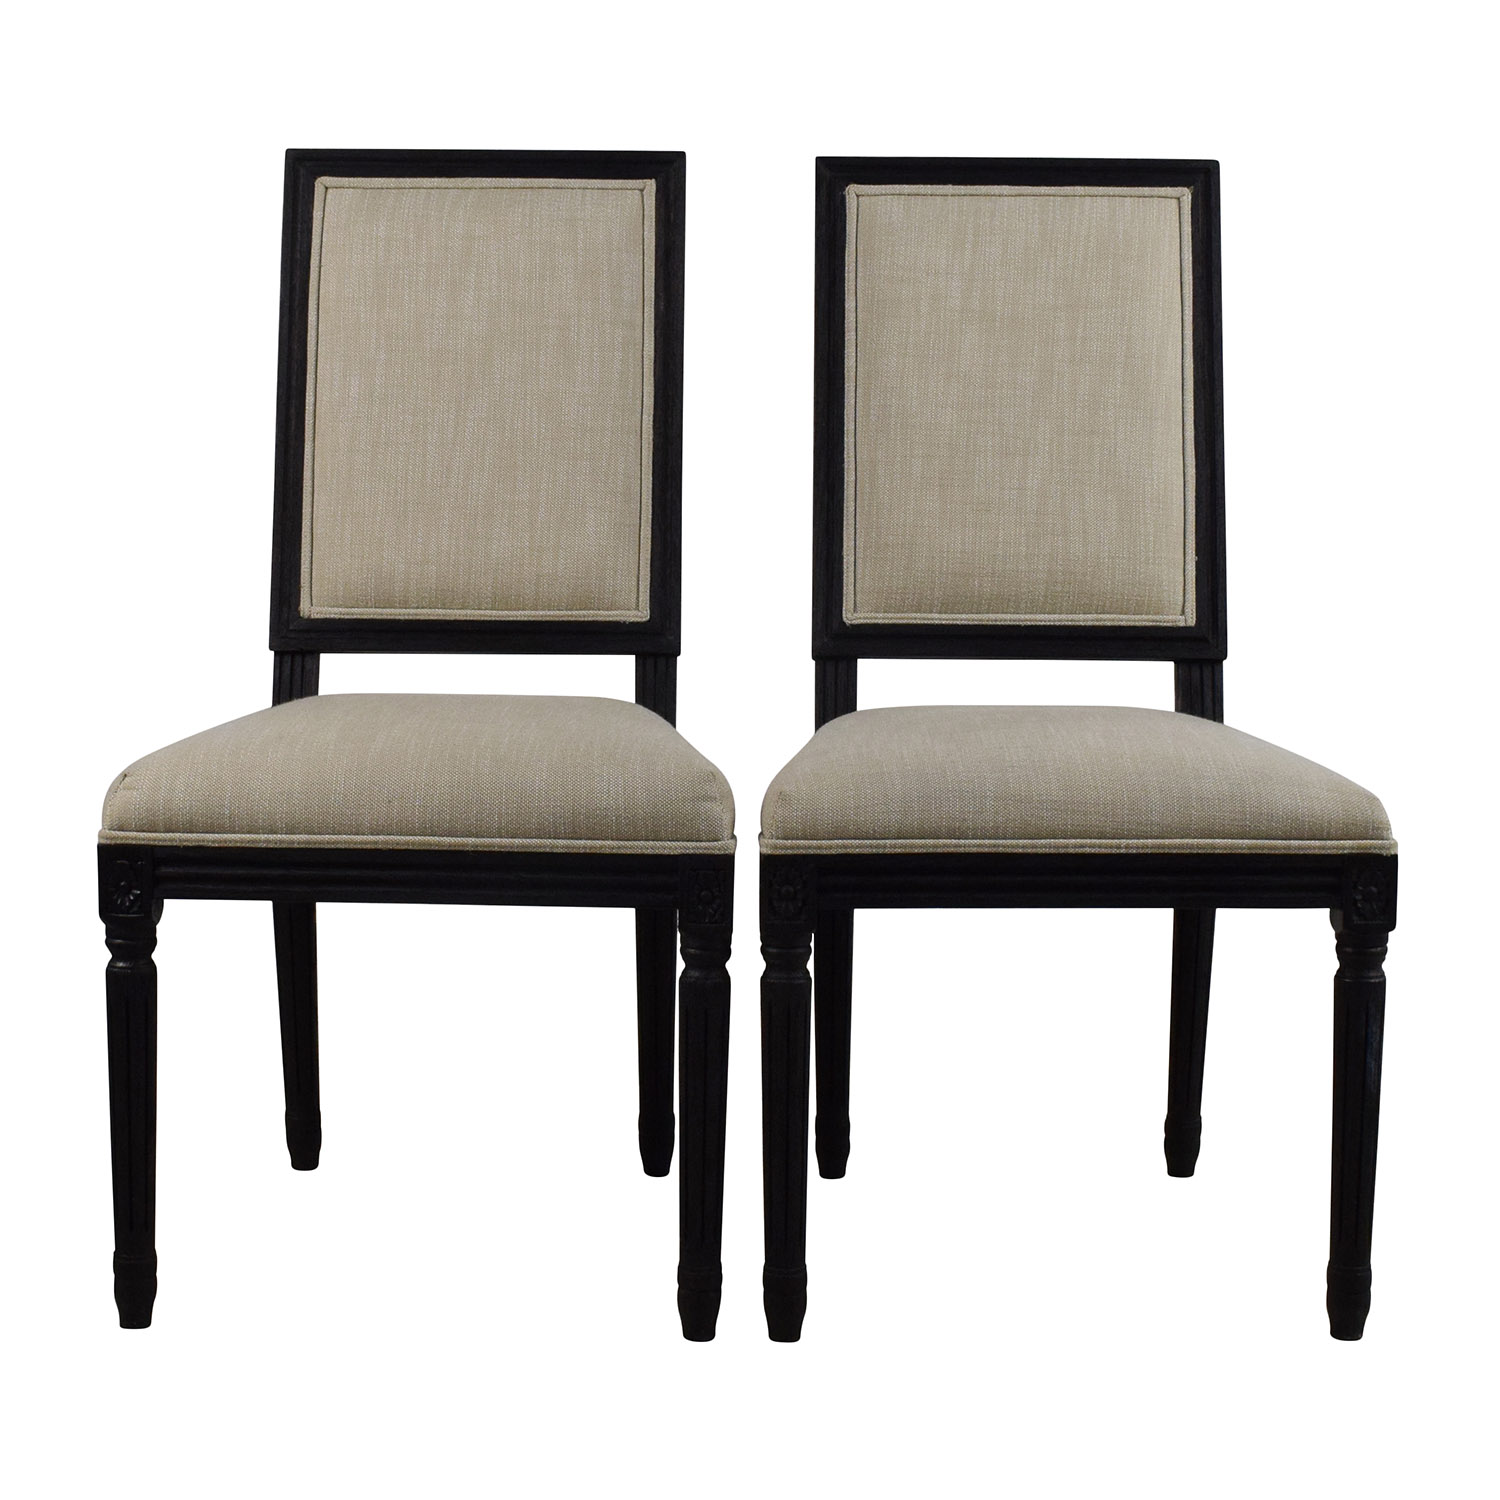 Restoration Hardware Restoration Hardware Pair of Vintage French Square Fabric Chairs dimensions